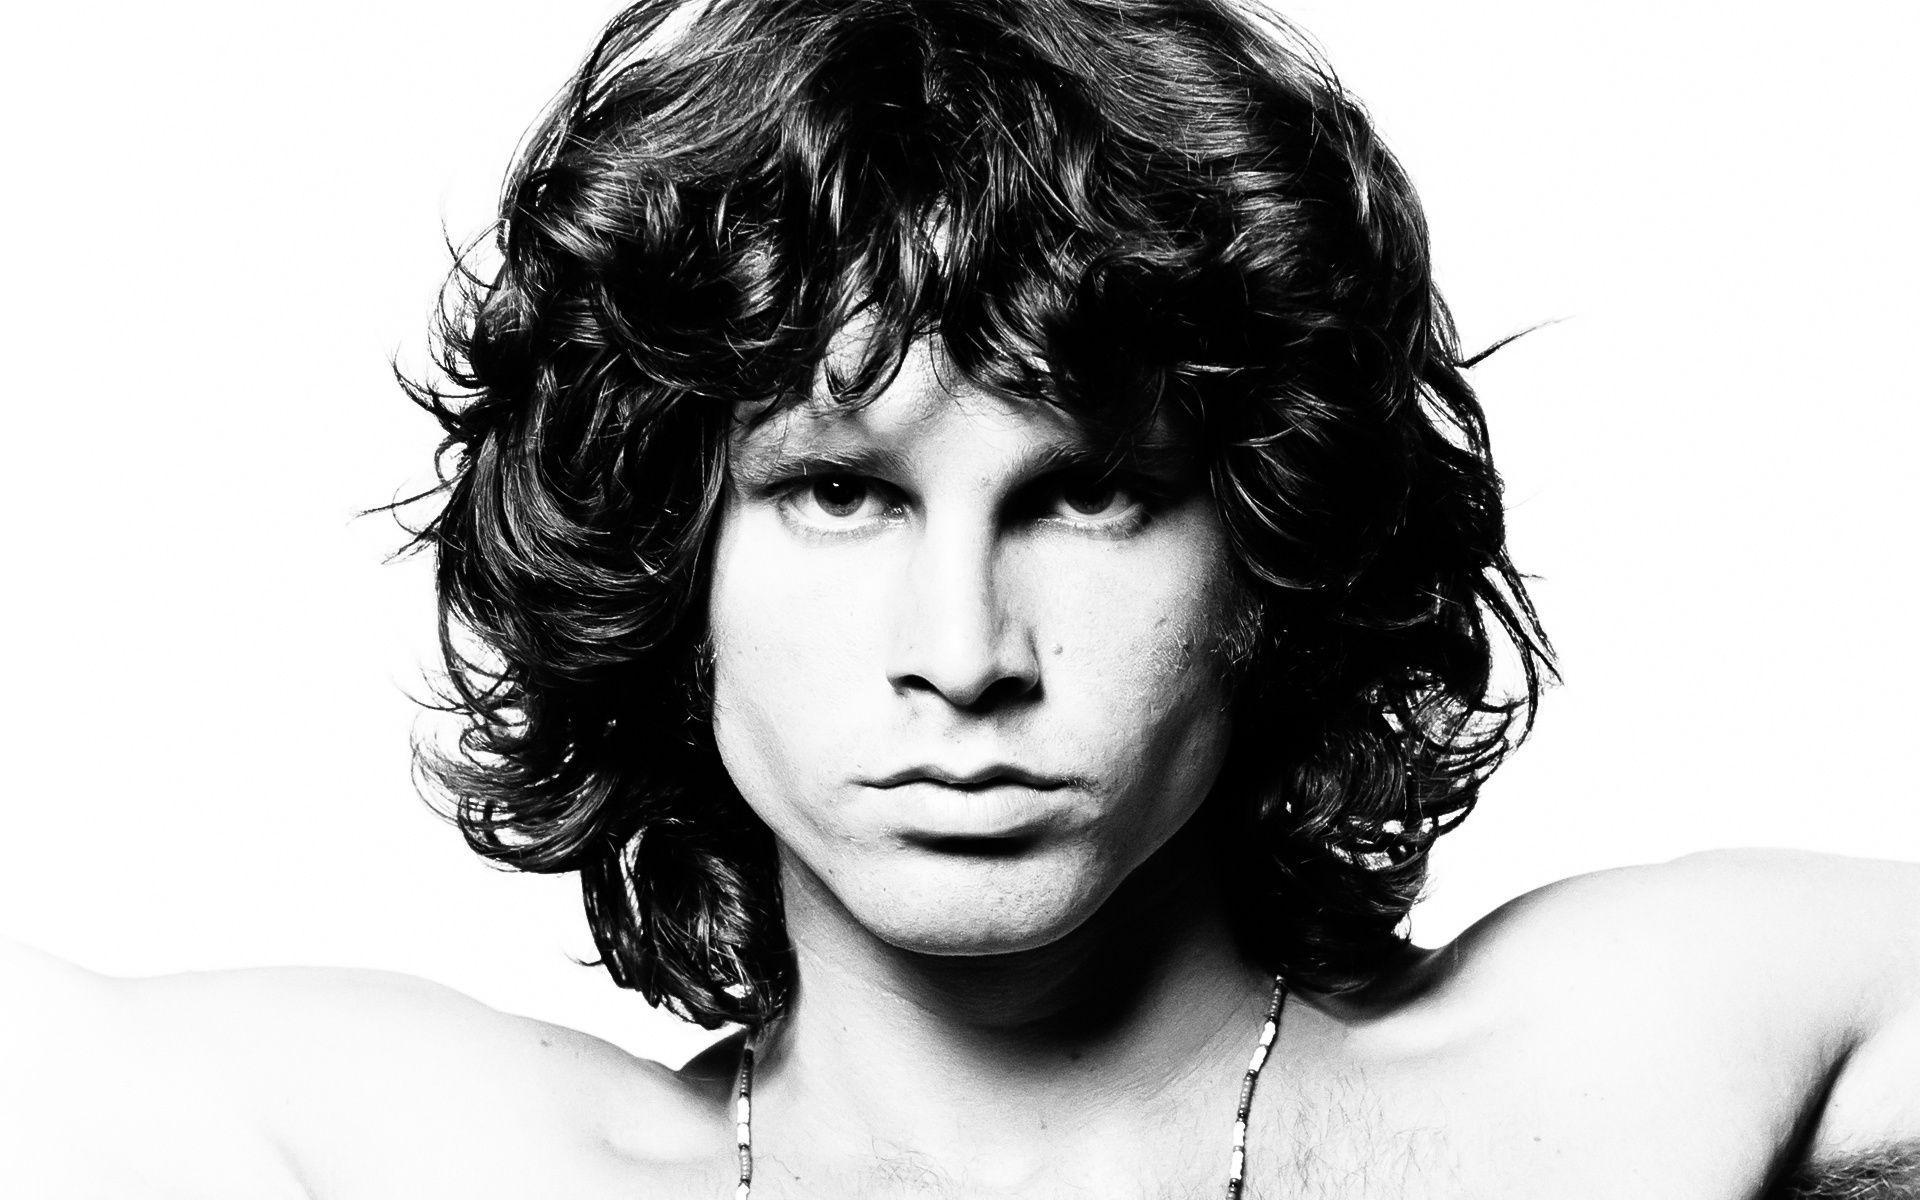 Fonds d&Jim Morrison : tous les wallpapers Jim Morrison